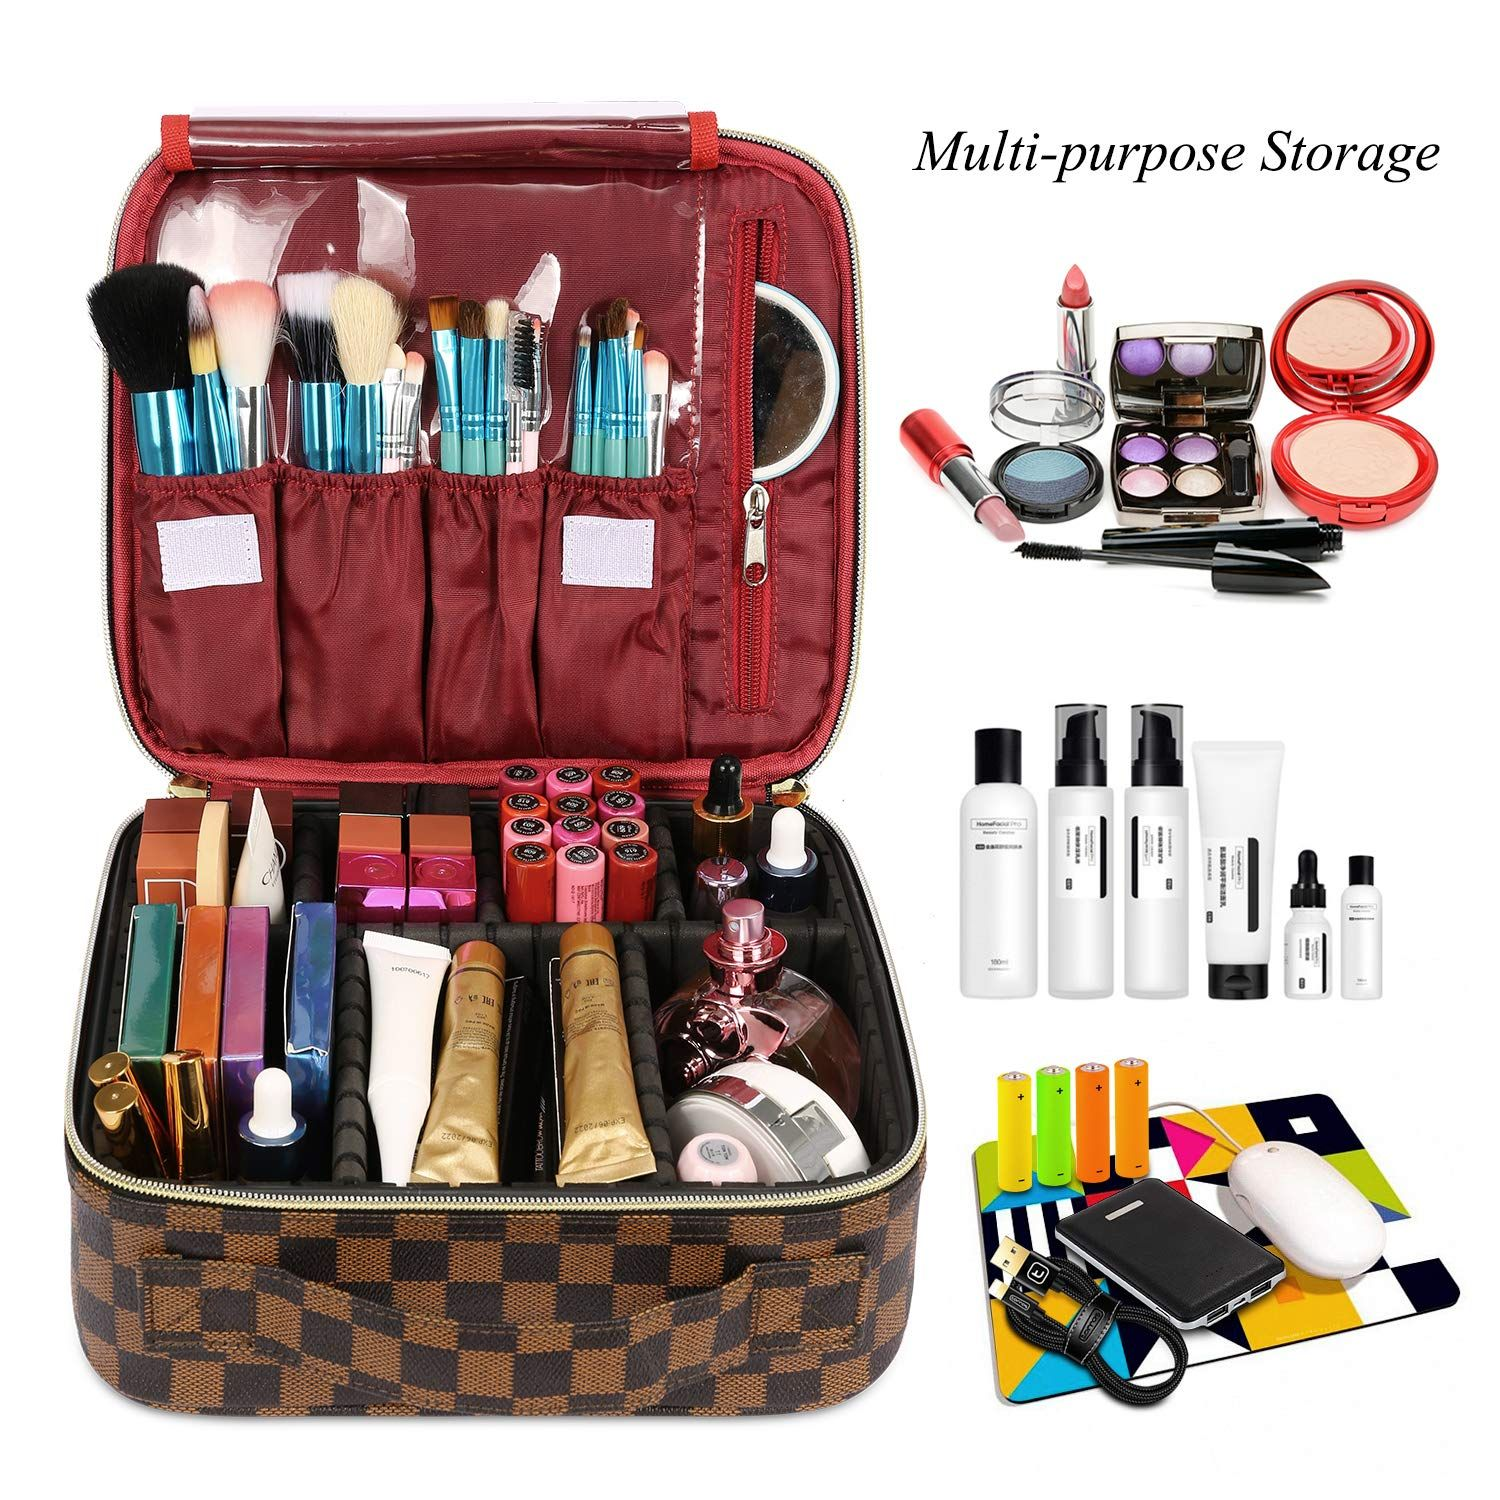 Travel Makeup Case Leather Cosmetic Bag Makeup Bag In 2020 Makeup Case Leather Makeup Case Makeup Bags Travel